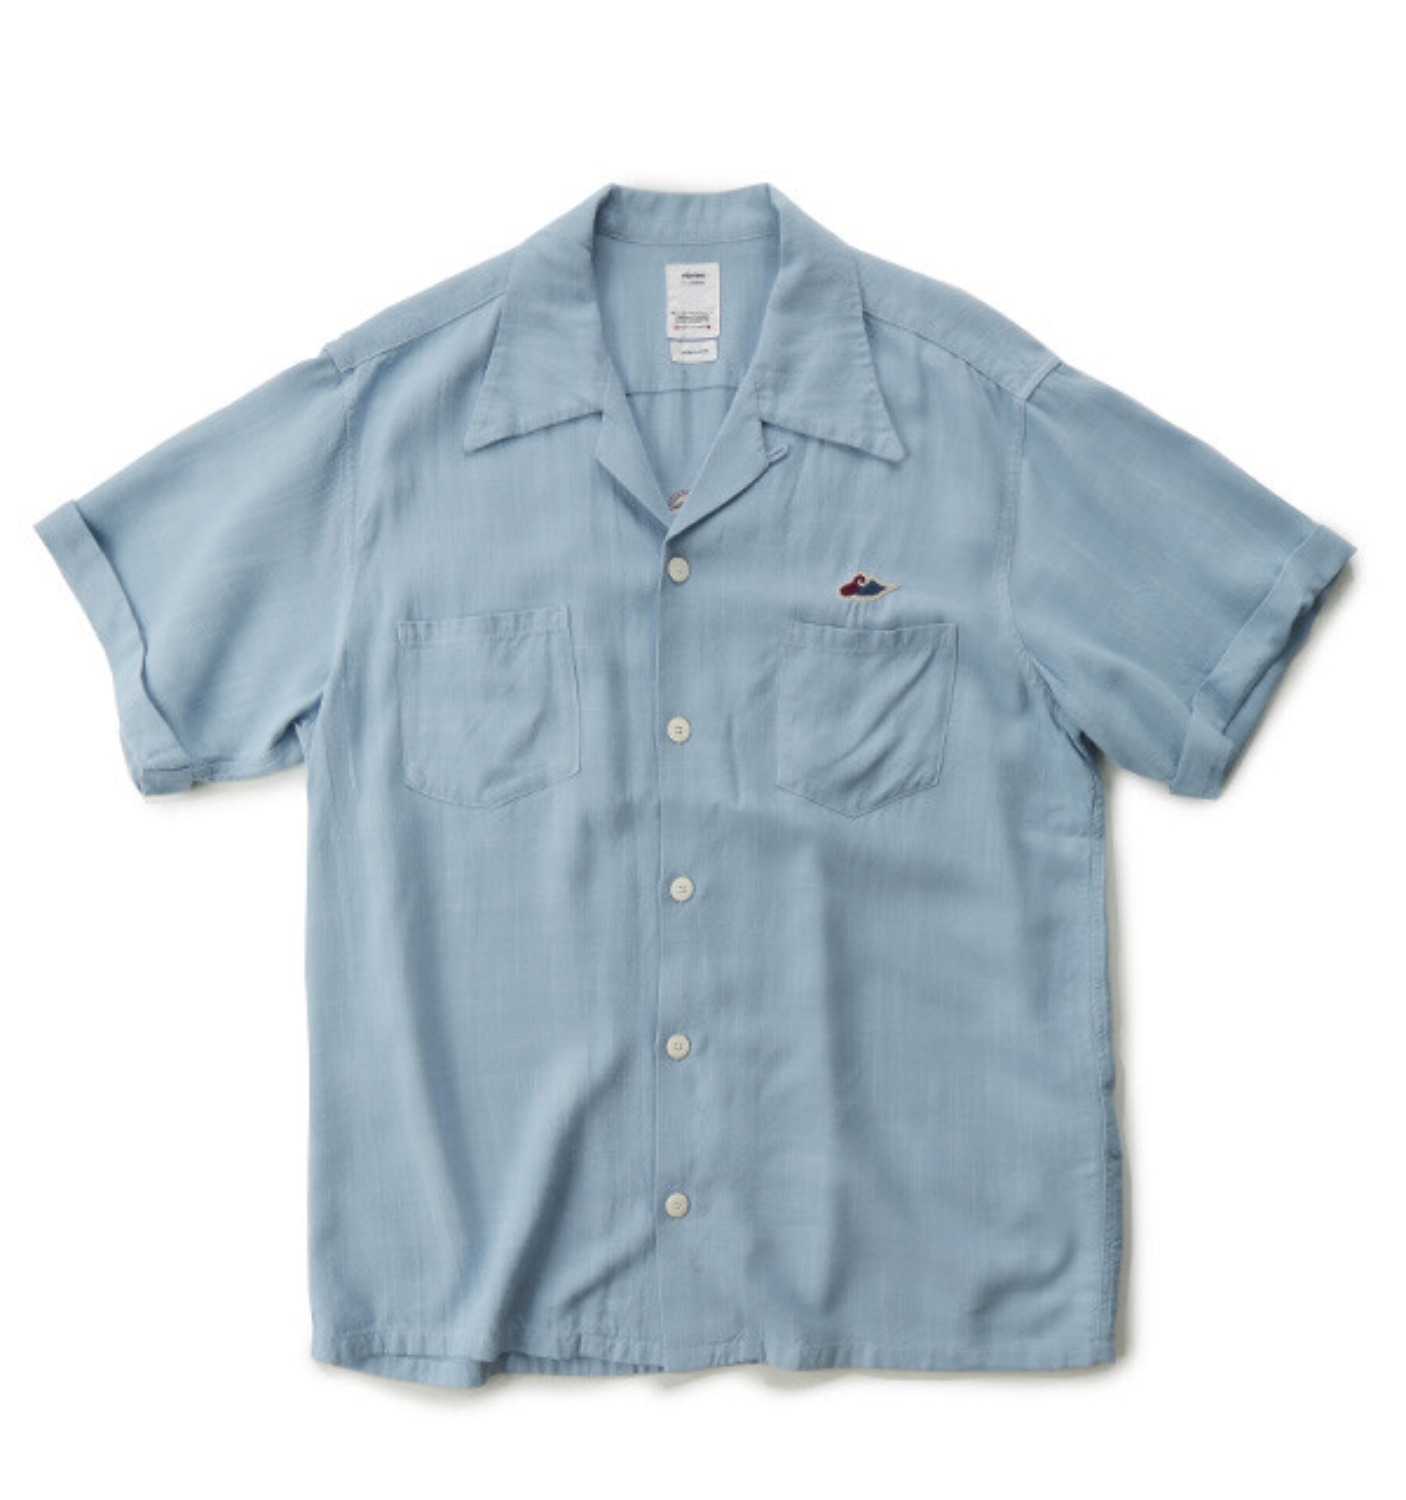 IRVING SHIRT S/S (SL RAYON) LIGHT BLUE